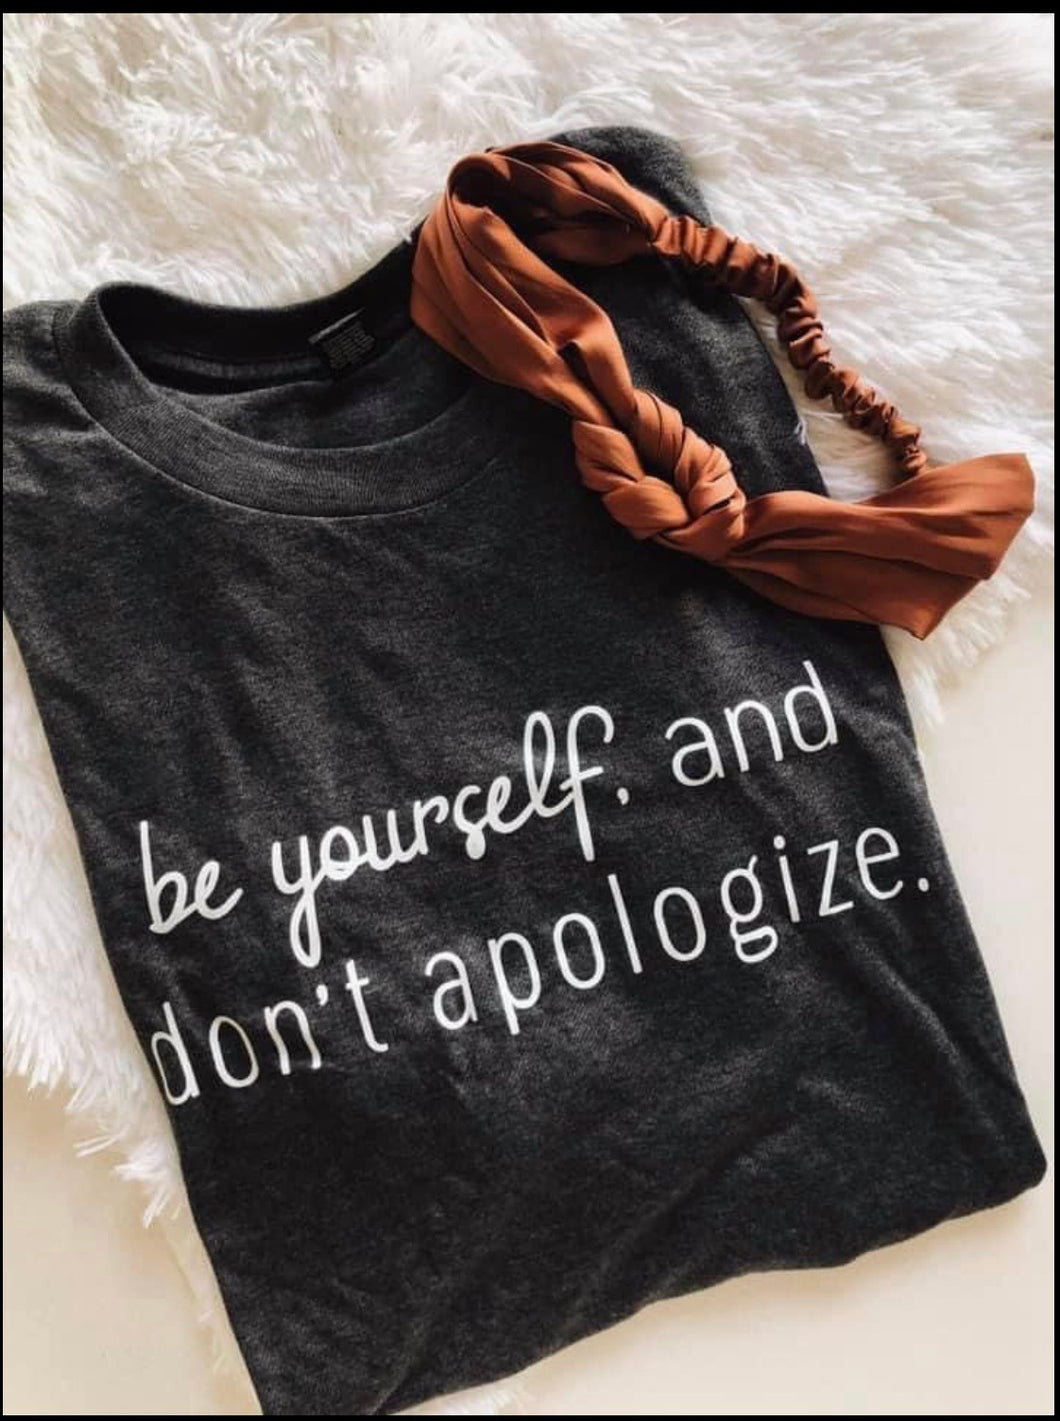 Be Yourself & Don't Apologize Tee